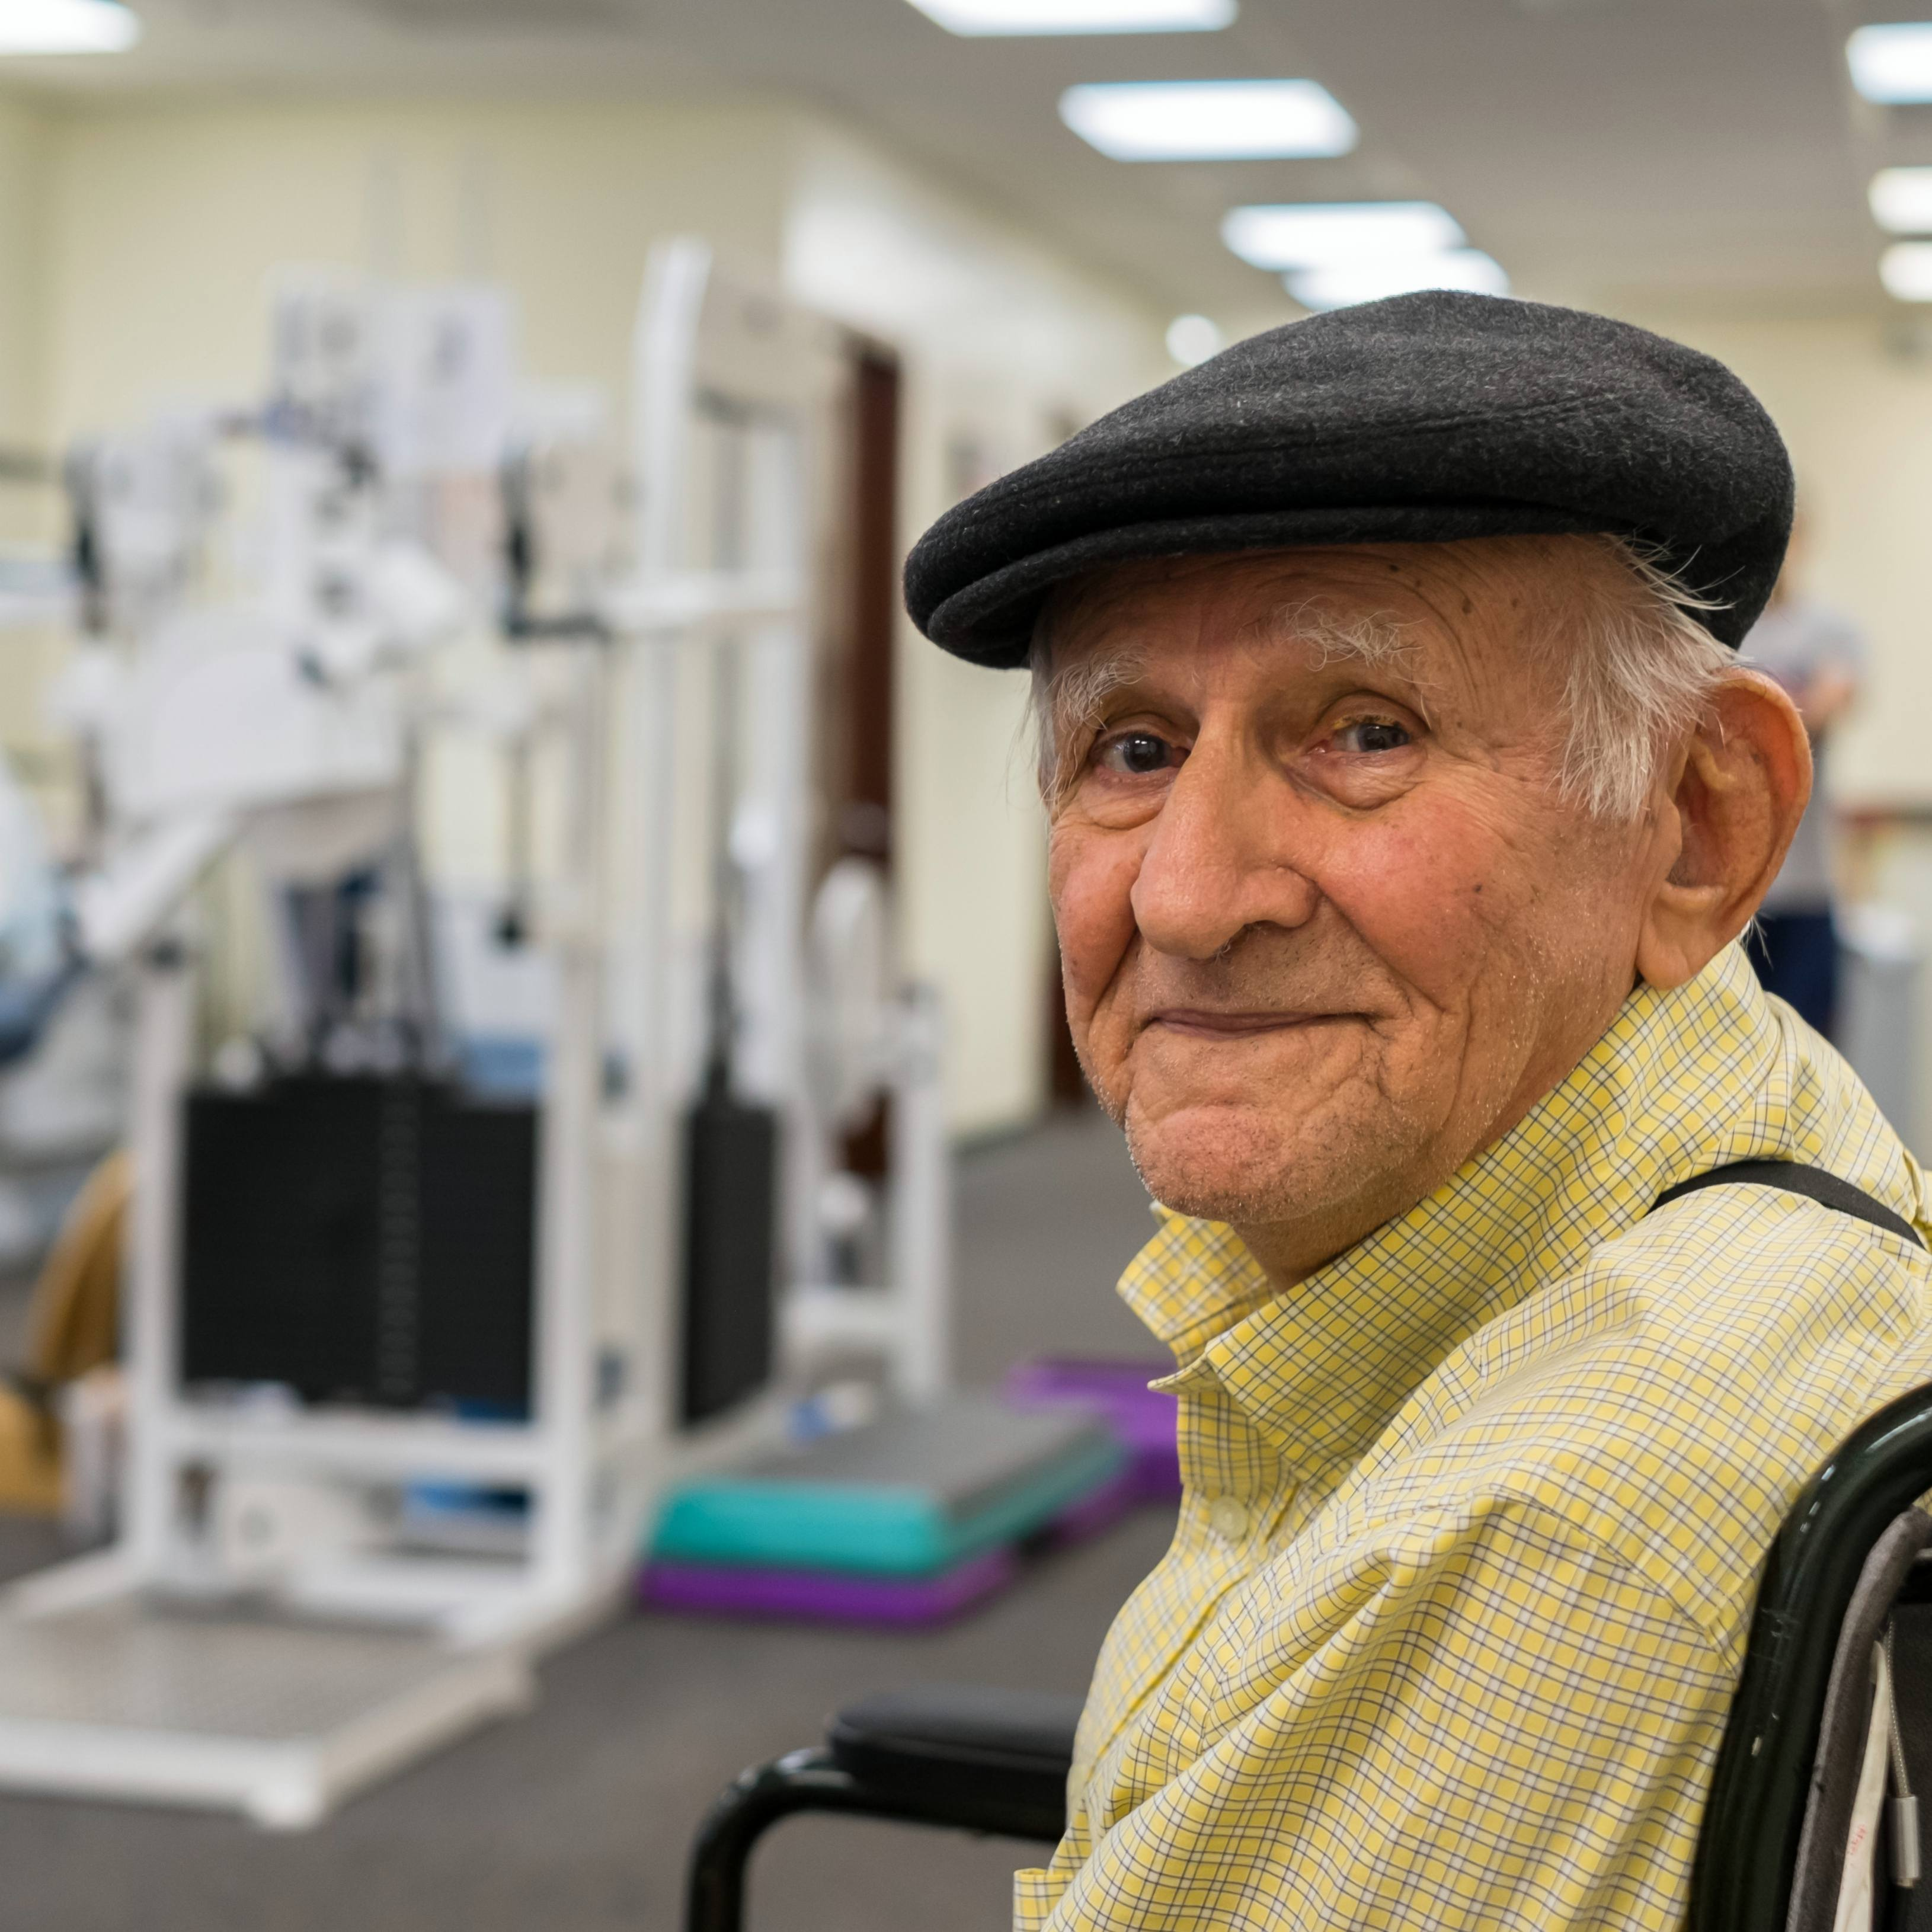 Elderly man receiving physical therapy